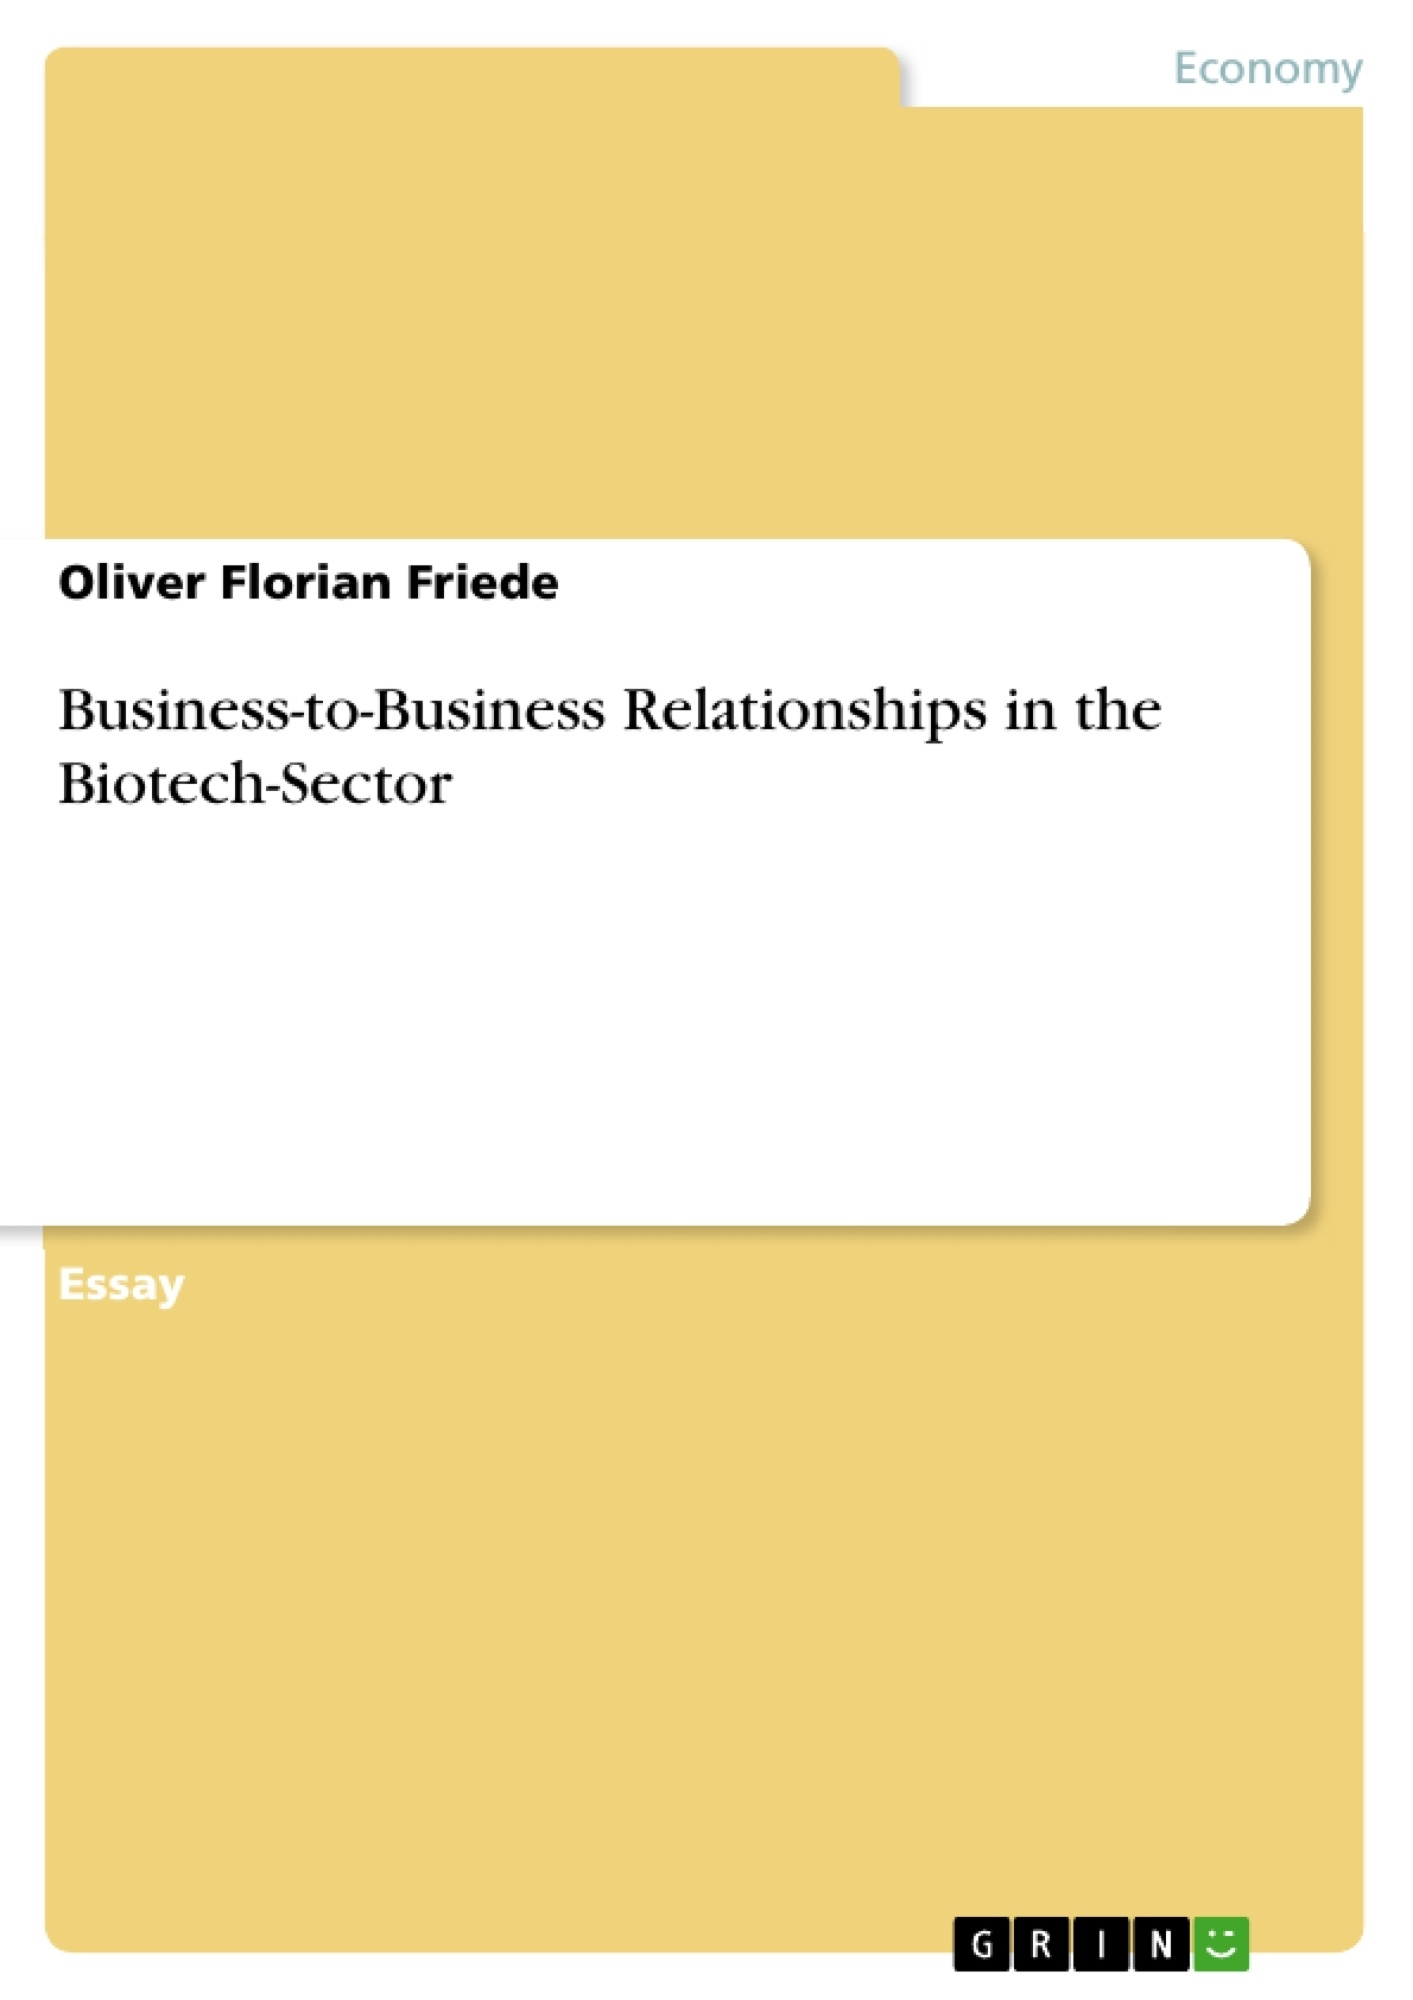 Title: Business-to-Business Relationships in the Biotech-Sector